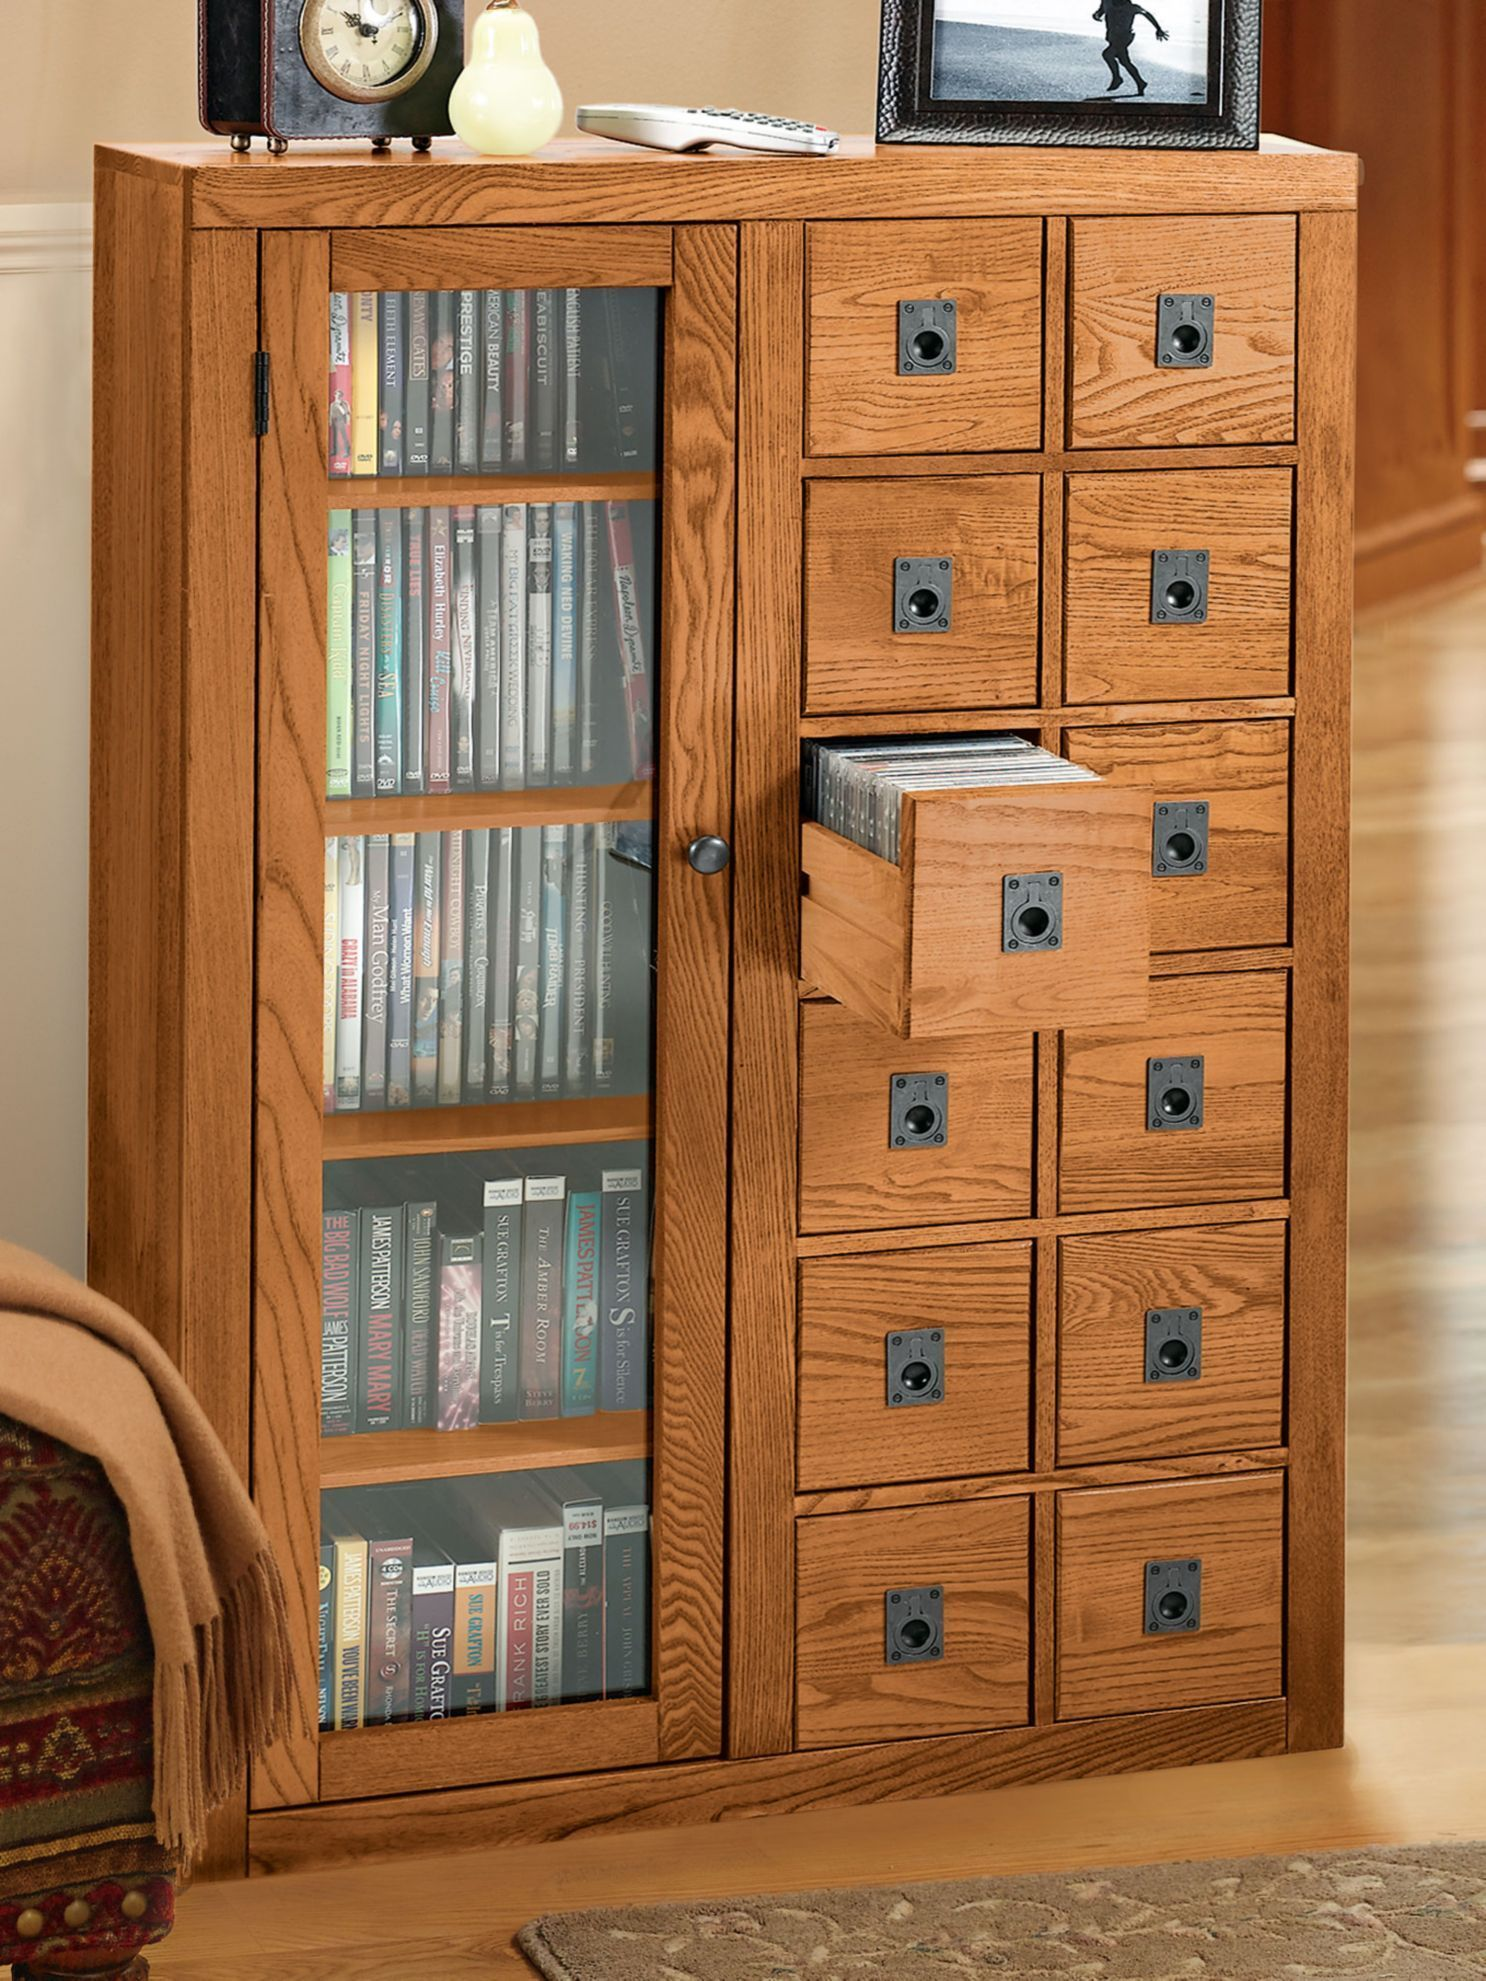 21 Cool & Unique DIY DVD Storage Ideas for Small Spaces